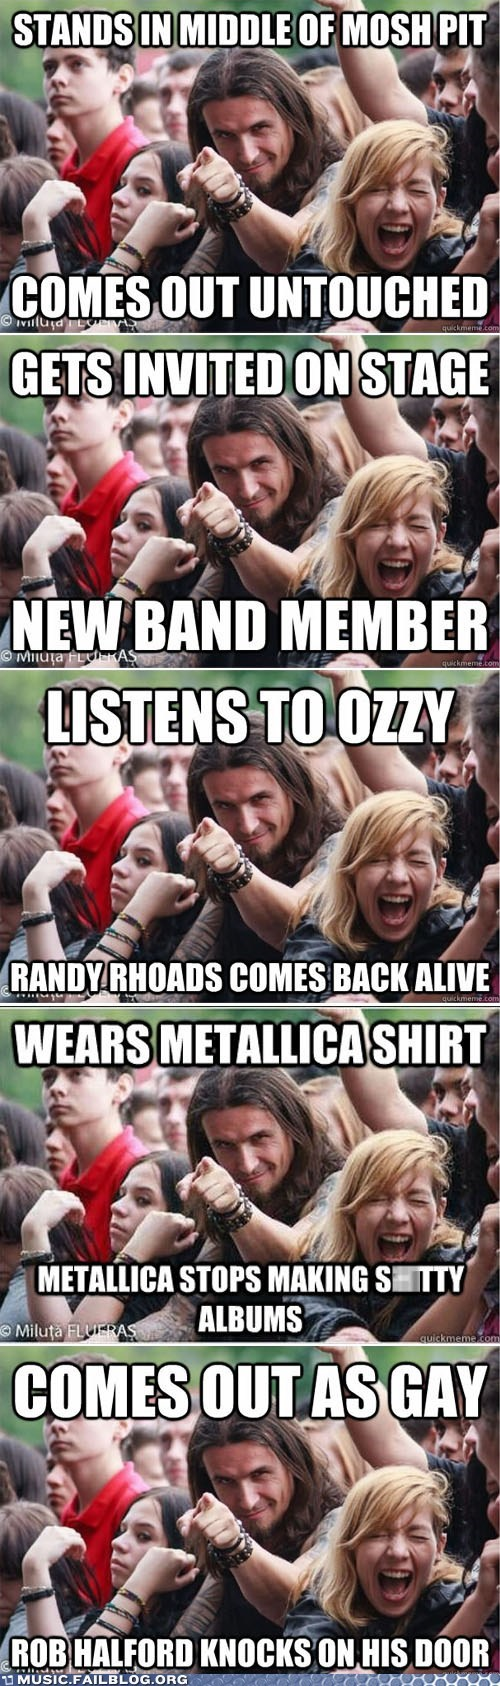 Hall of Fame meme metal metal meme ridiculously photogenic g ridiculously photogenic m usic fails - 6328257536